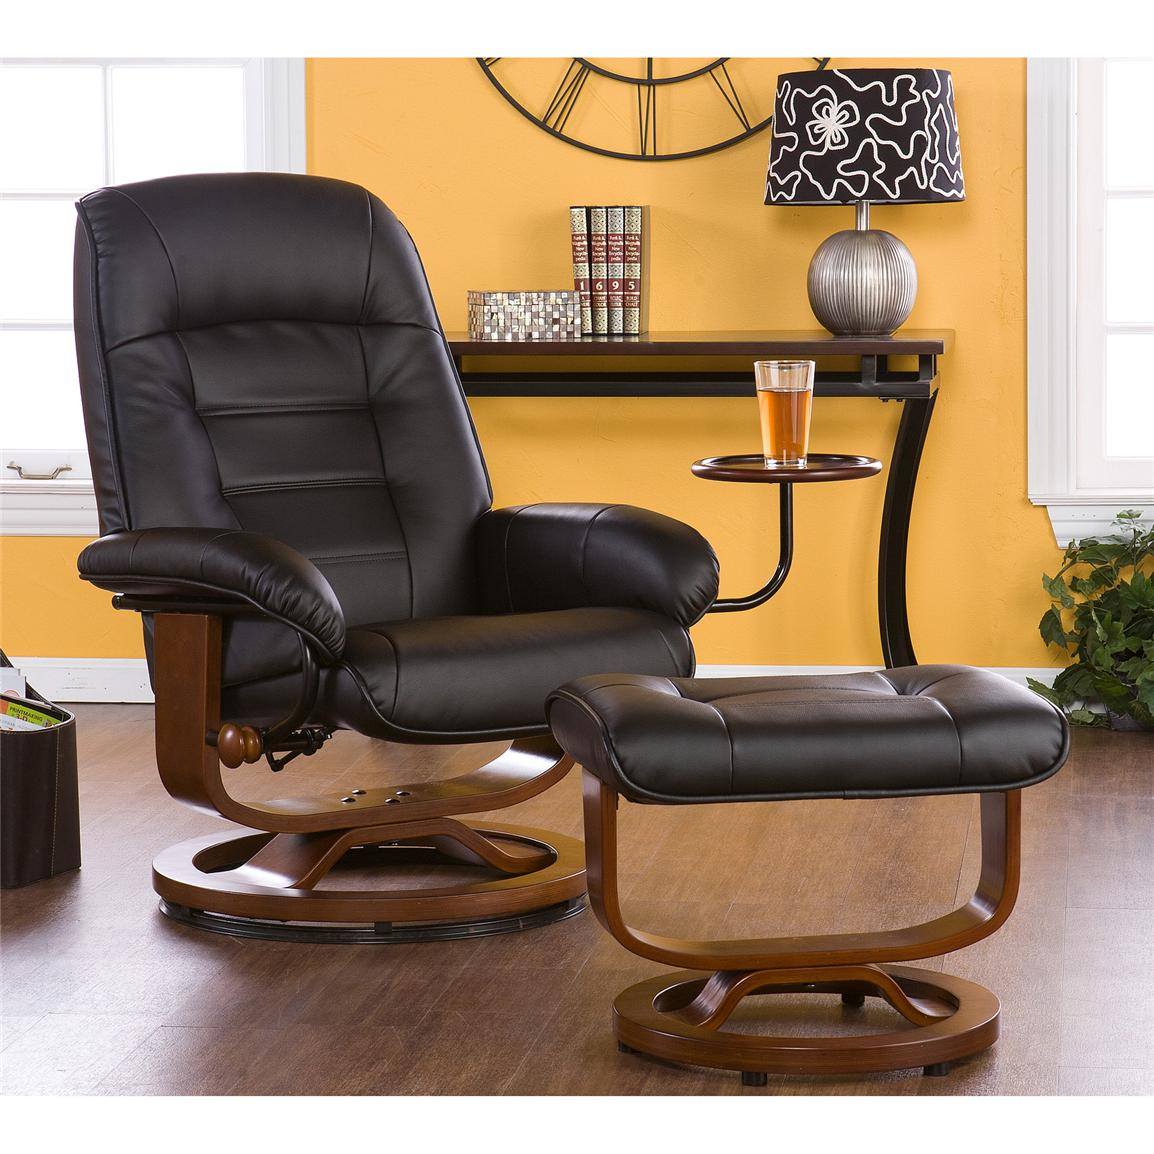 Holly & Martin™ Hemphill Leather Recliner and Ottoman, Black